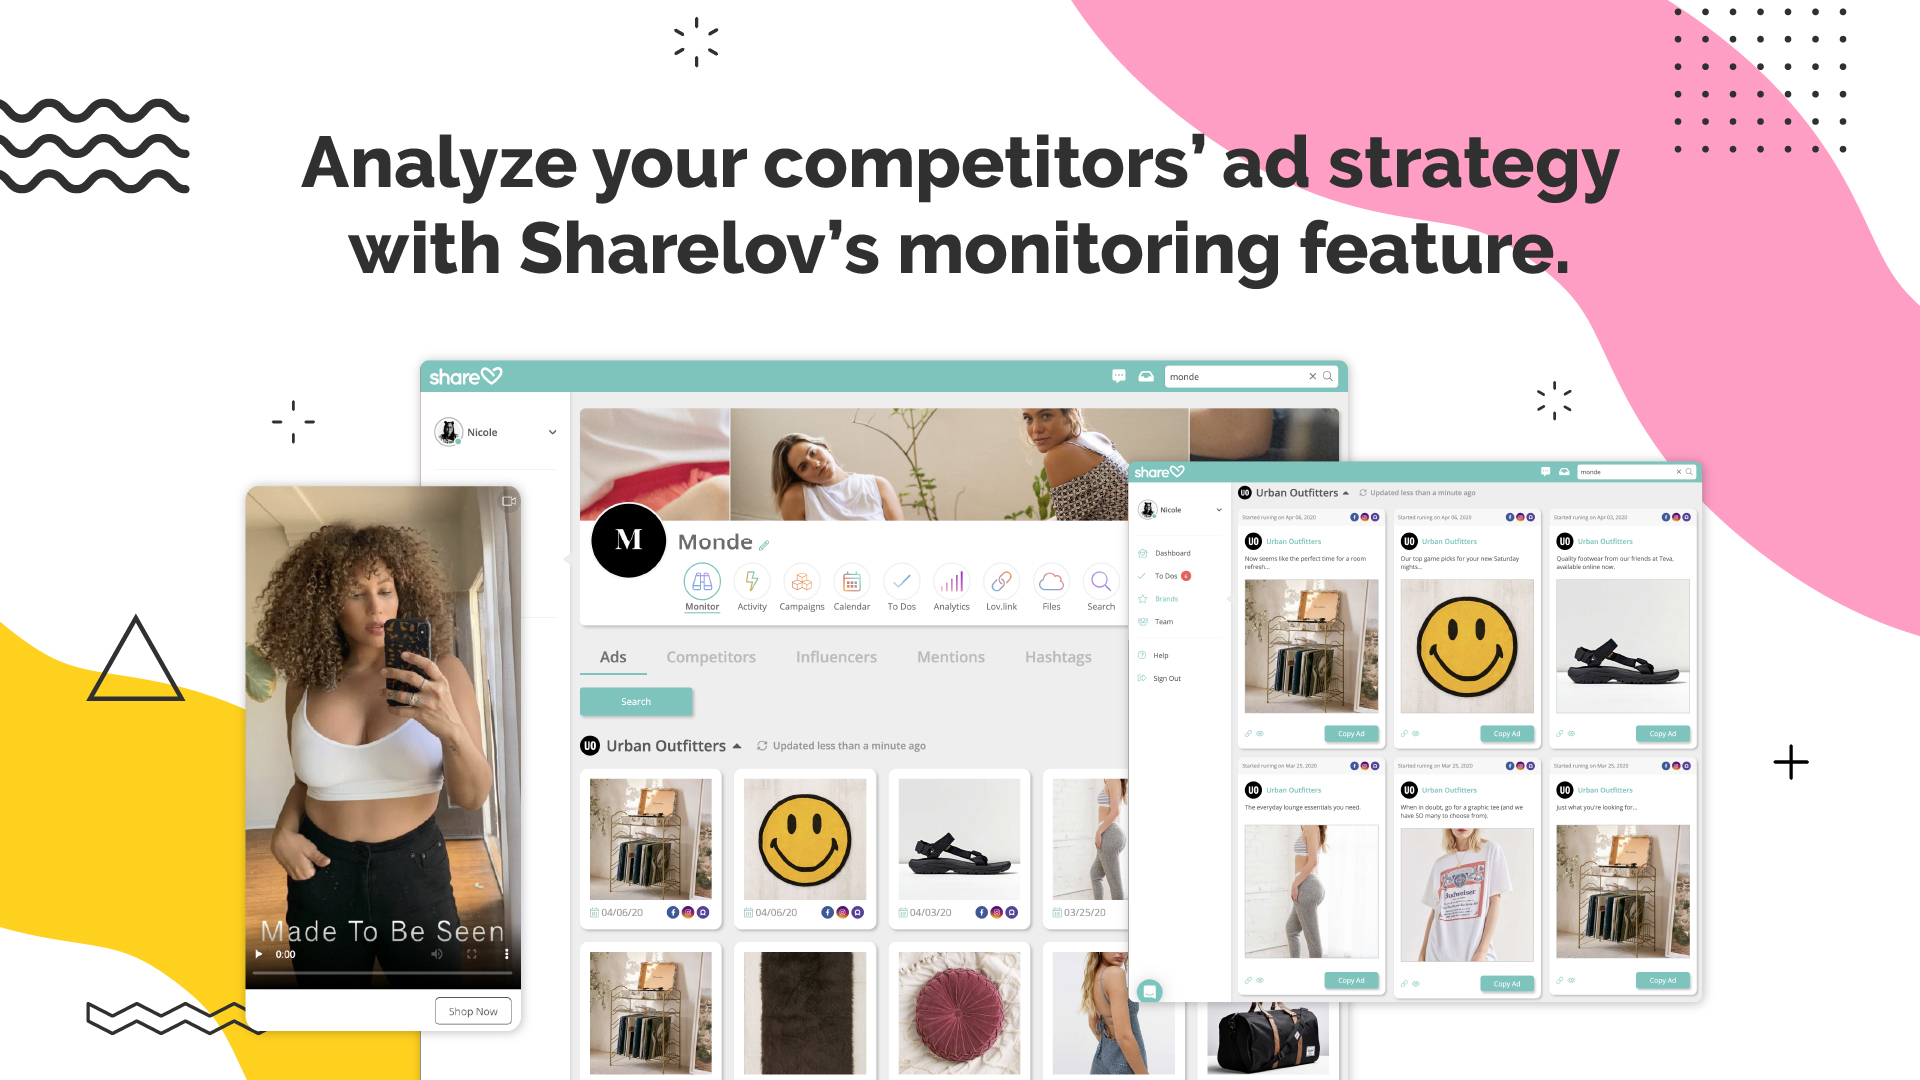 Analyze your competitors' ad strategy with Sharelov's monitoring feature